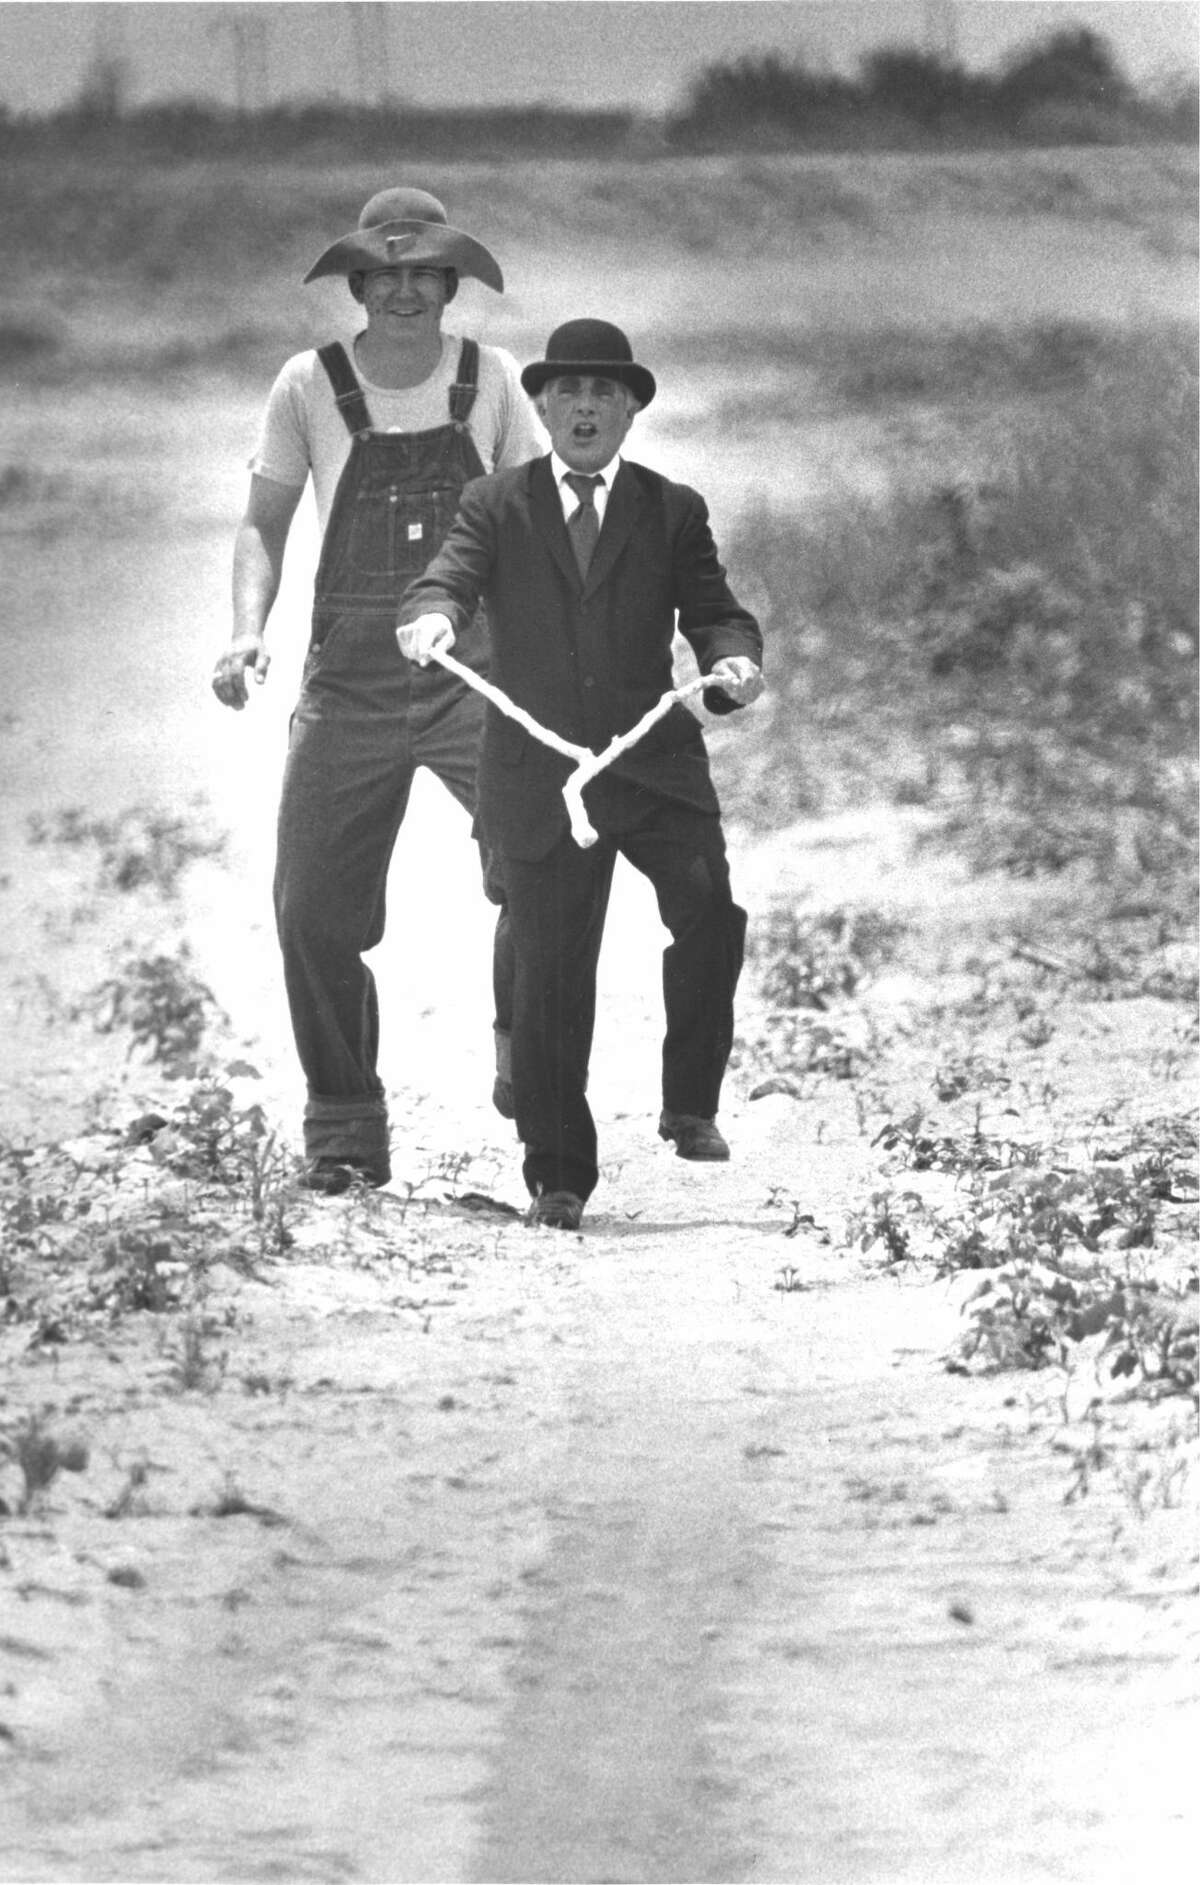 File photos from past years of Summer Mummers. Summer Mummers hero Ron Hughes uses a divining rod to find oil while sidekick Dough Heck tags along to help. June 1984.